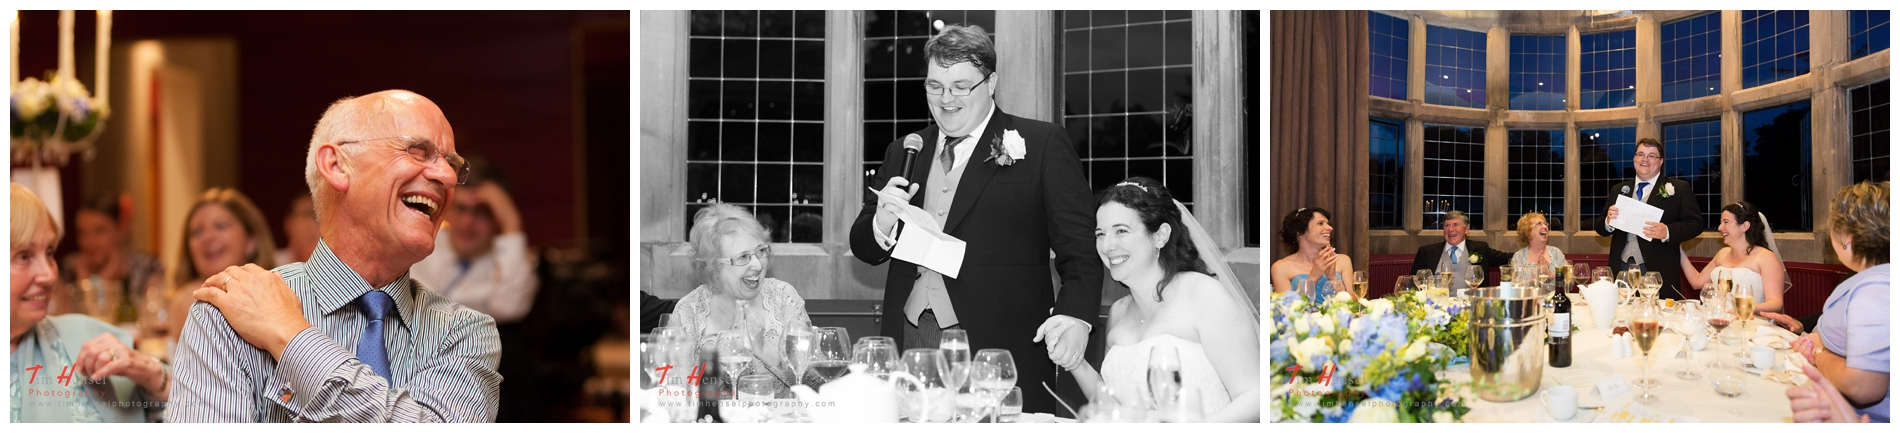 More speeches photos, an excellent opportunity for relaxed wedding photos